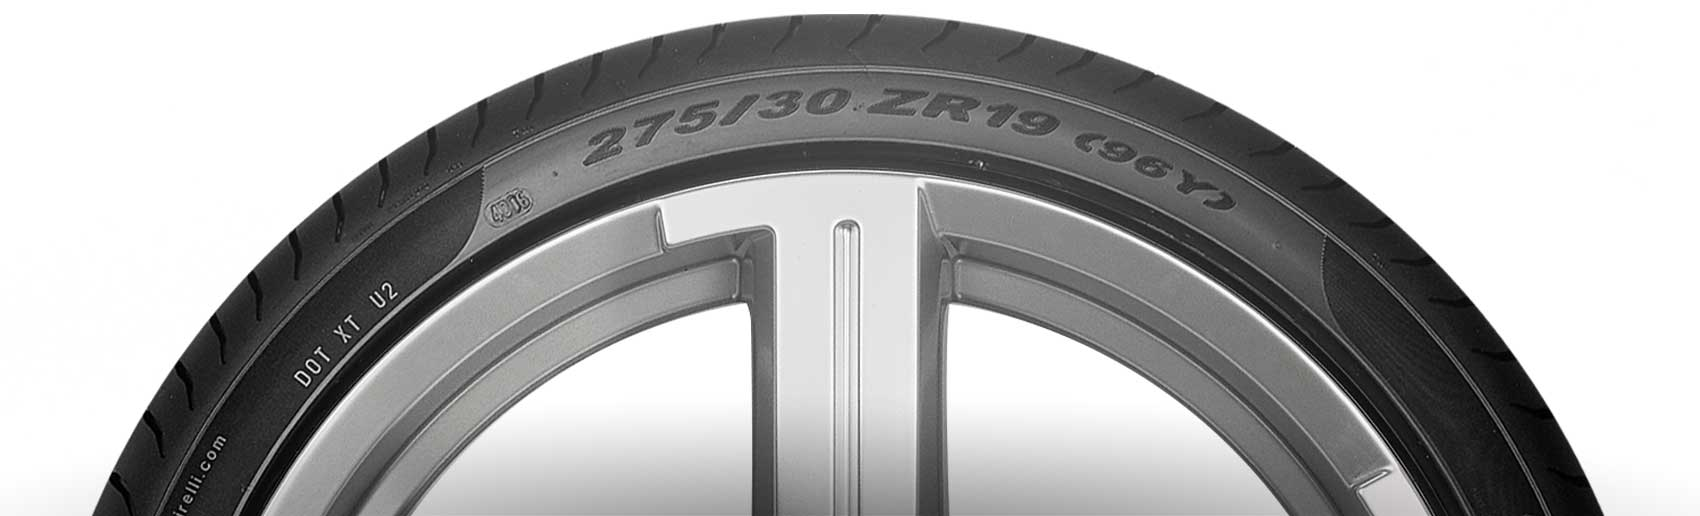 Tyre size calculator find tyres by size pirelli cross section geenschuldenfo Image collections